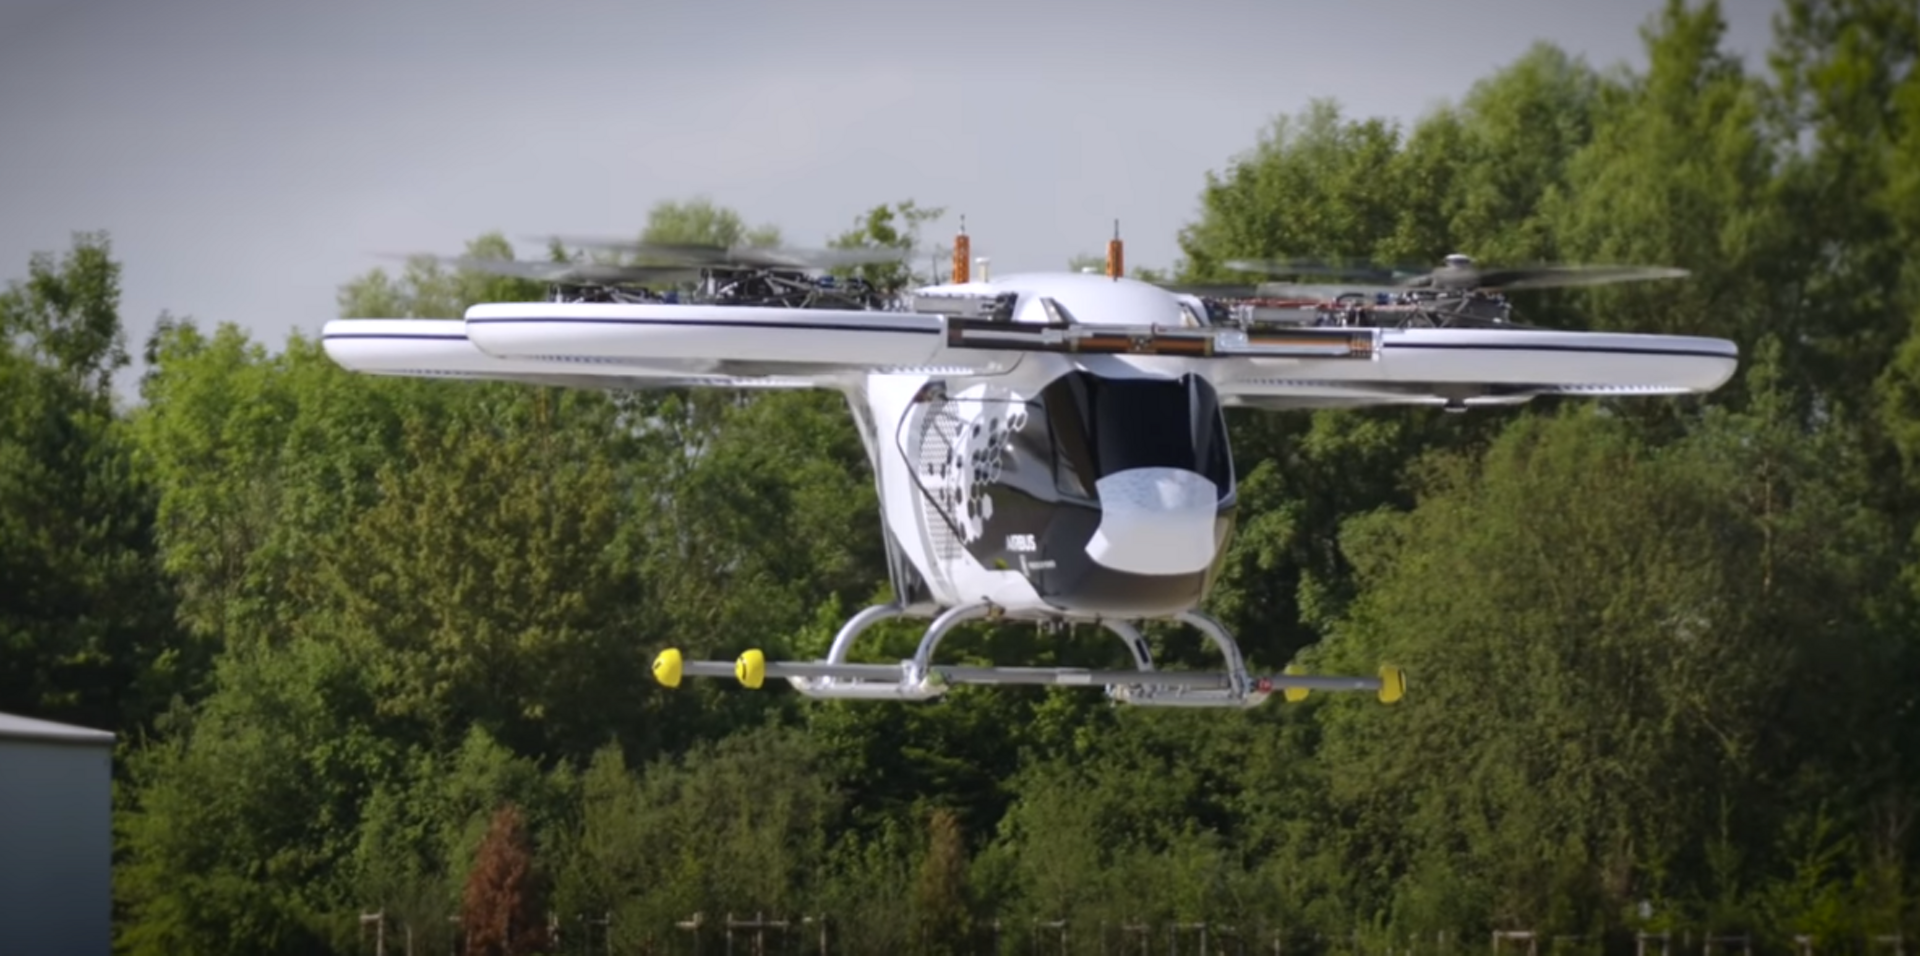 On July 31, 2020, CityAirbus demonstrator performed its first fully automatic flight, from take-off through stabilisation in flight, and landing at Donauwörth, Germany.